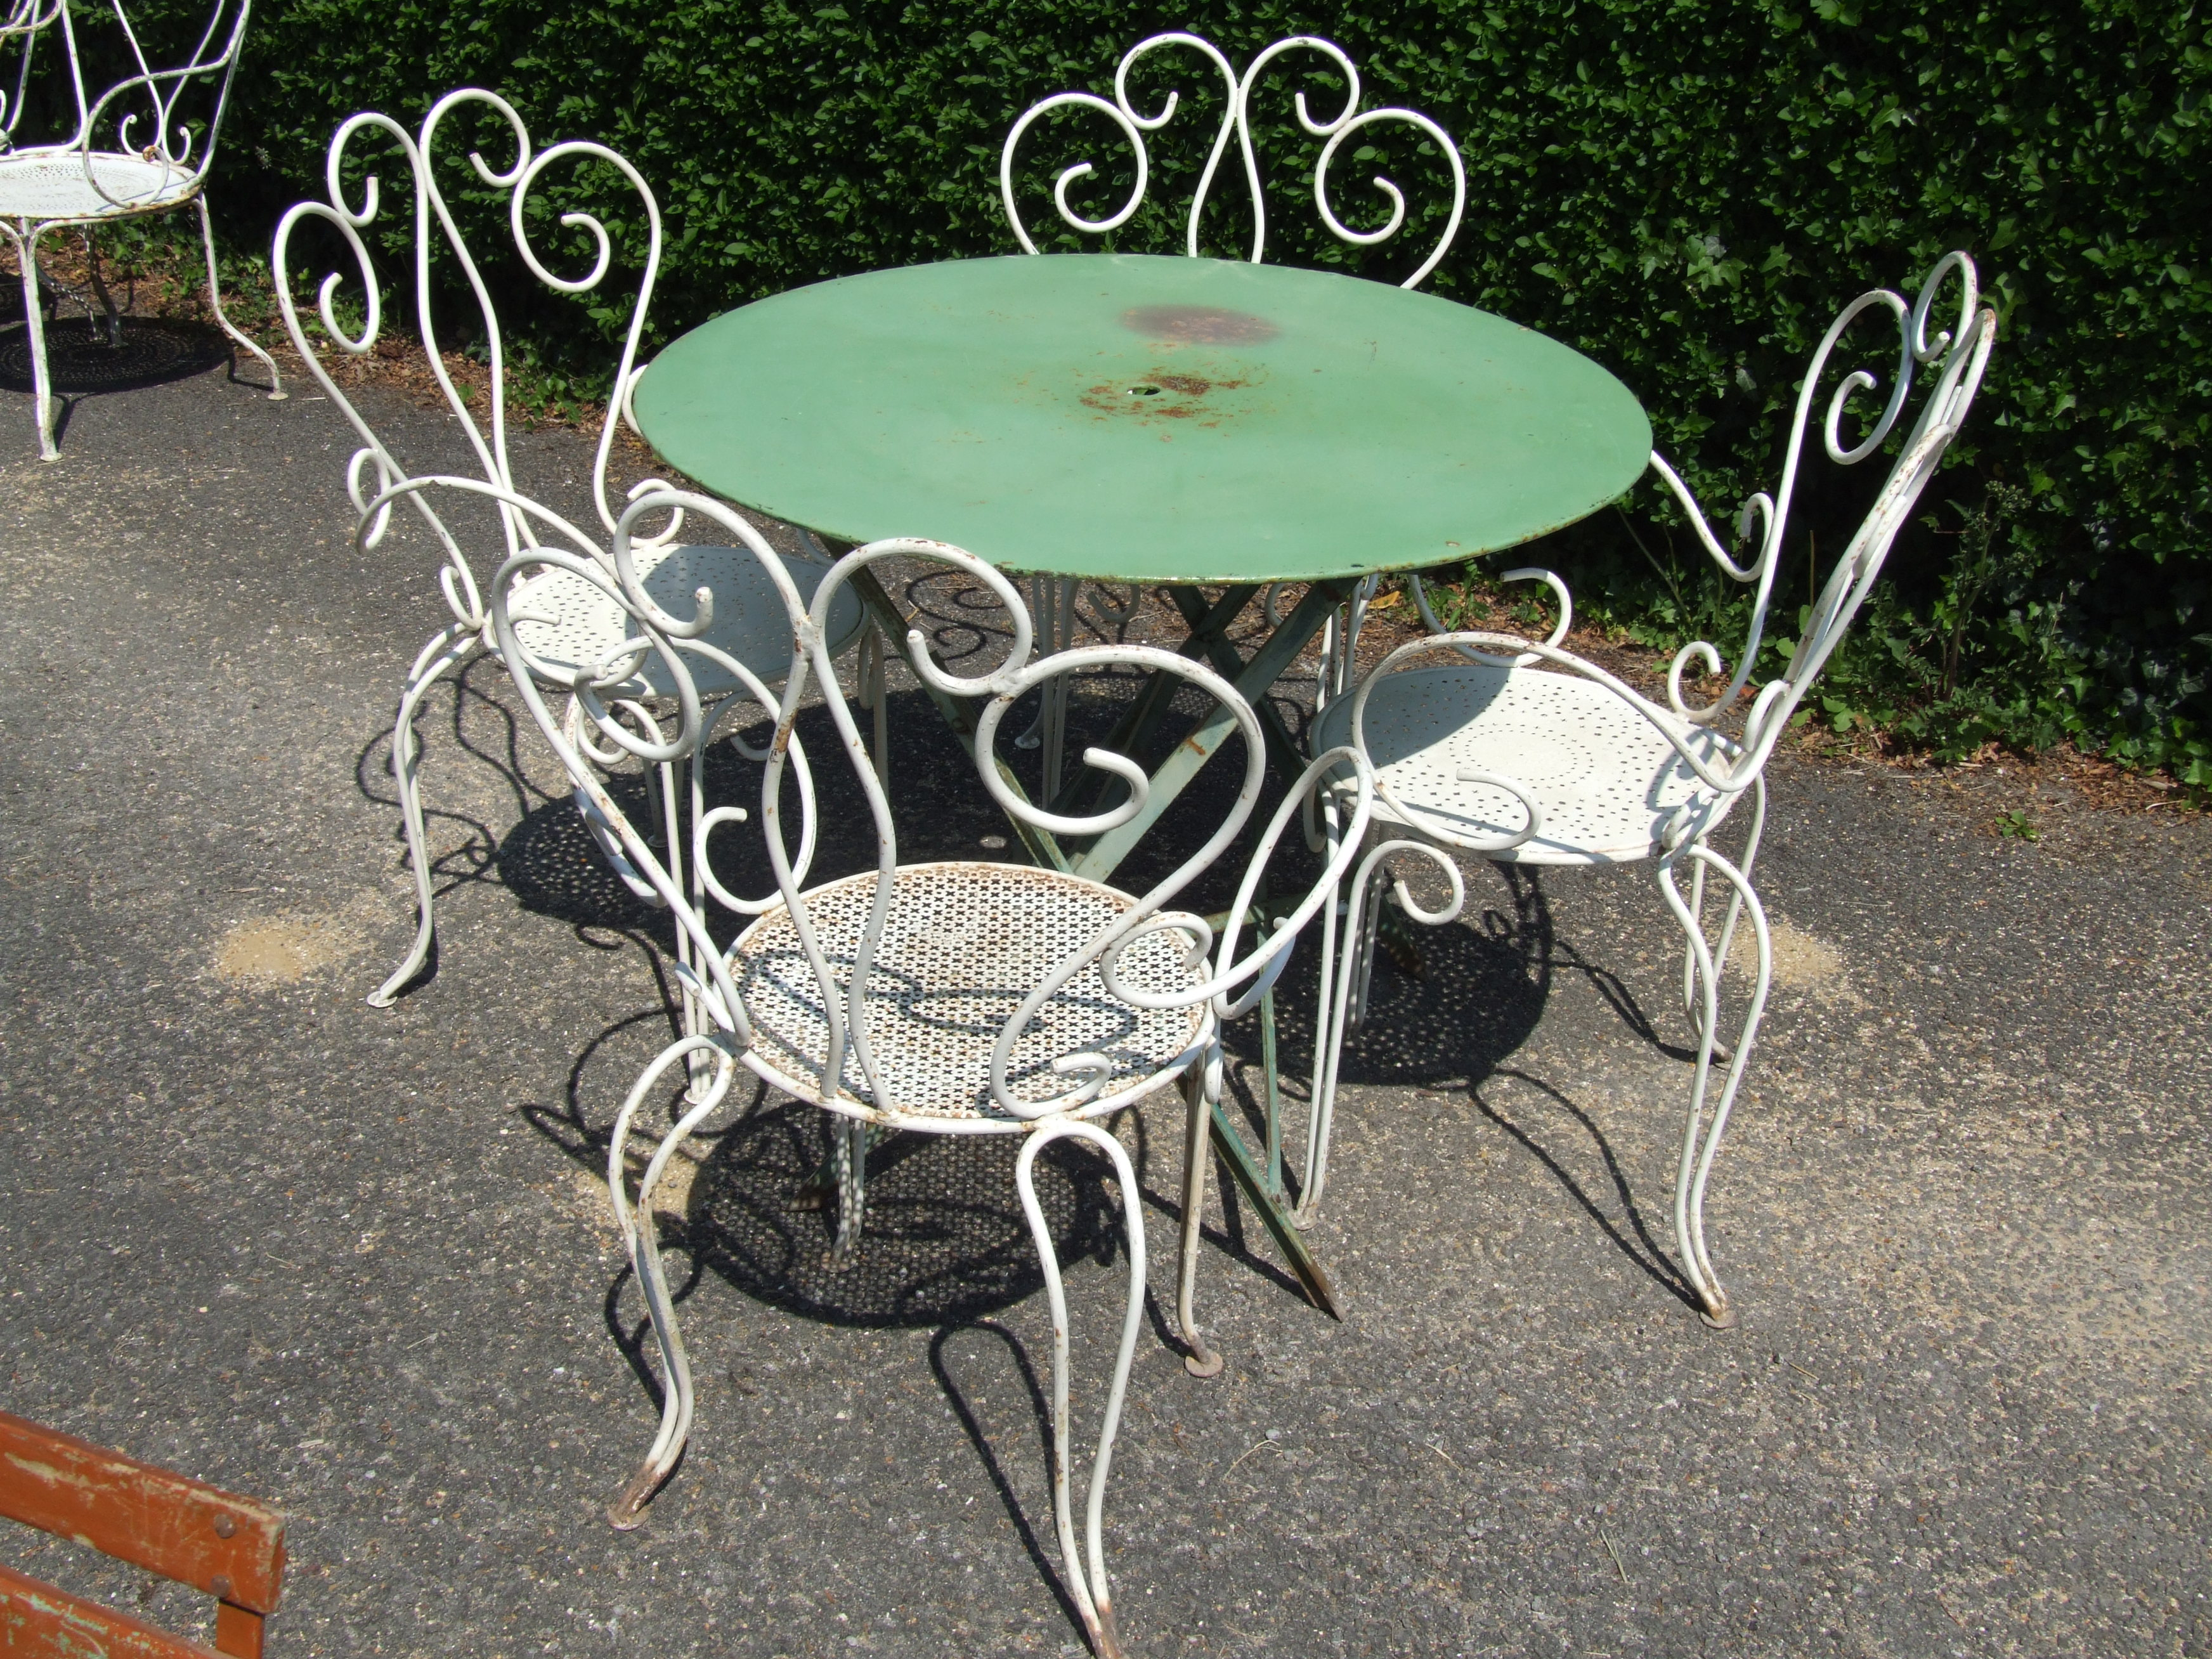 G099 S Pair Vintage French Wrought Iron Garden Patio